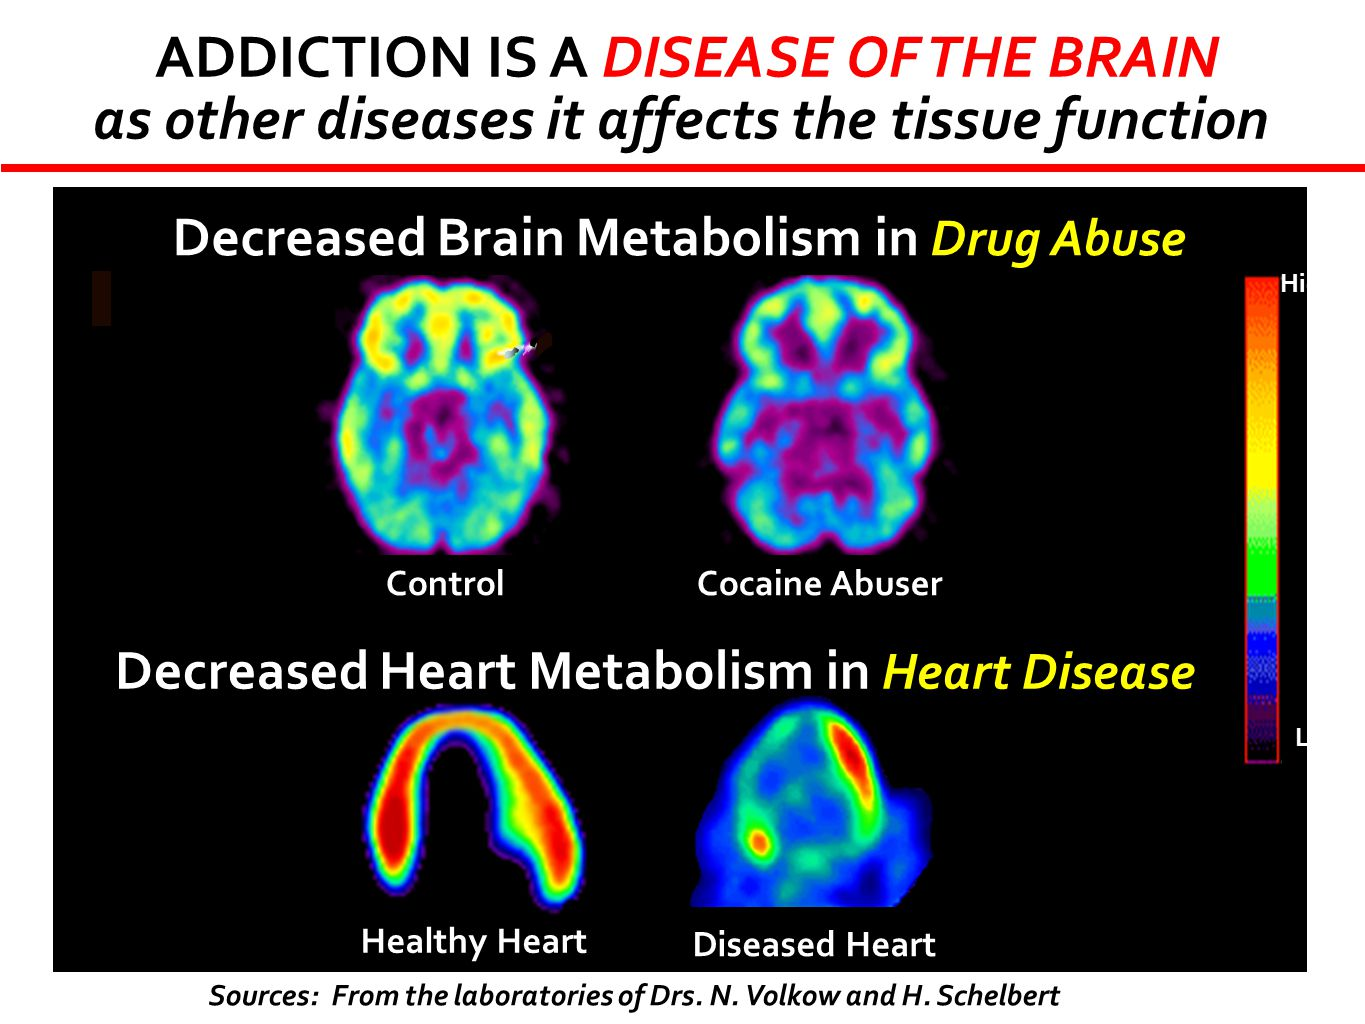 ADDICTION IS A DISEASE OF THE BRAIN